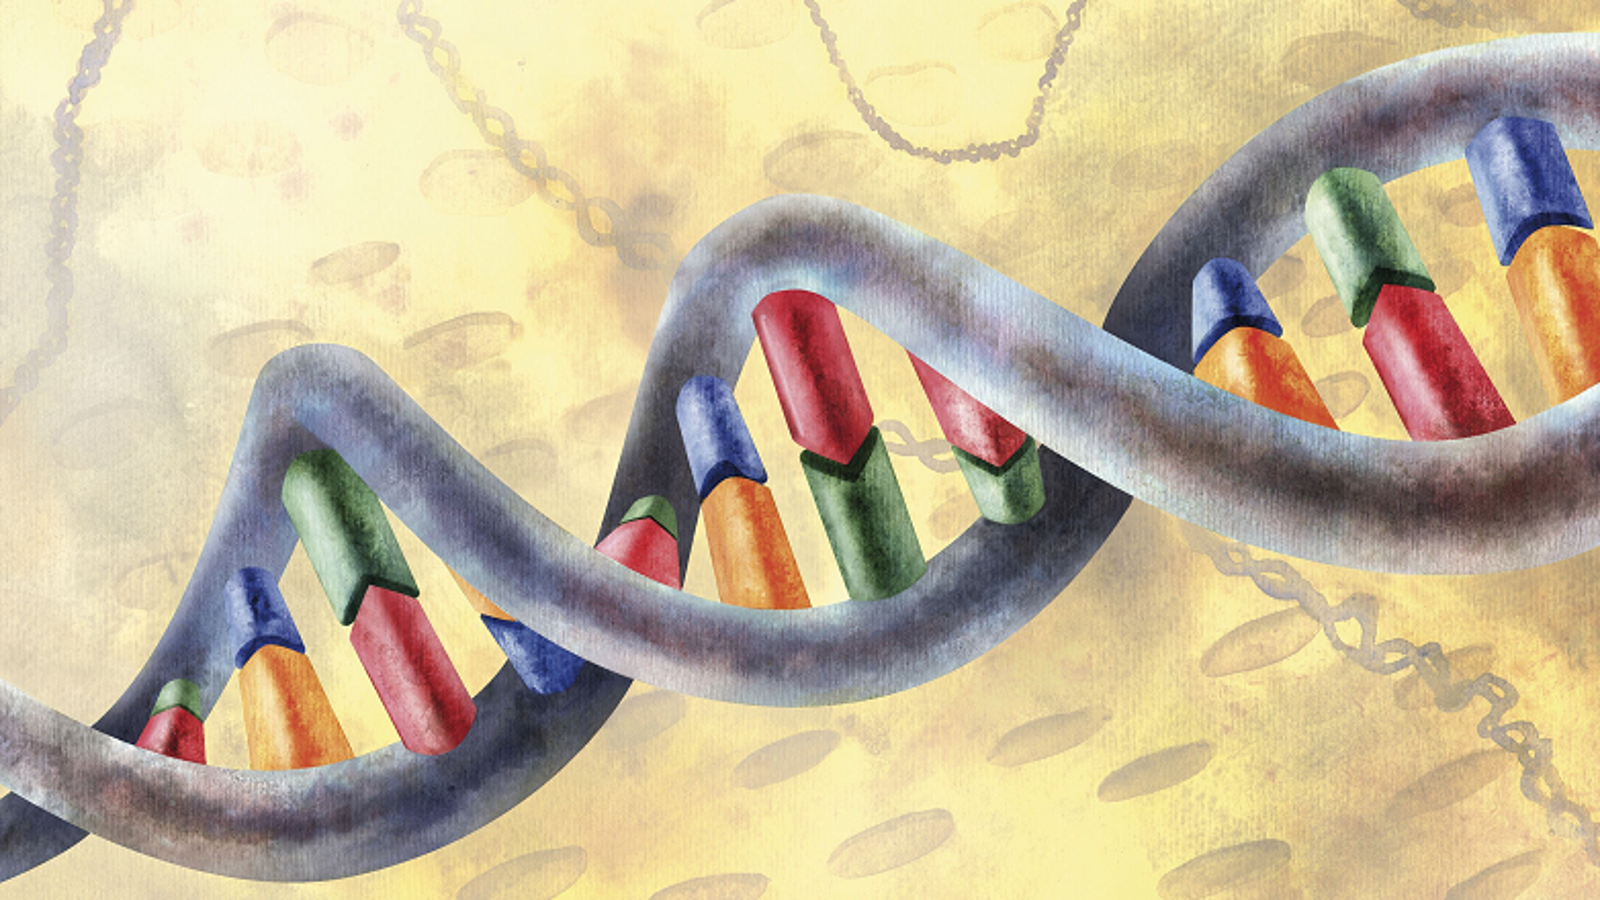 Video Explainer: The Math Inside the Shape of DNA